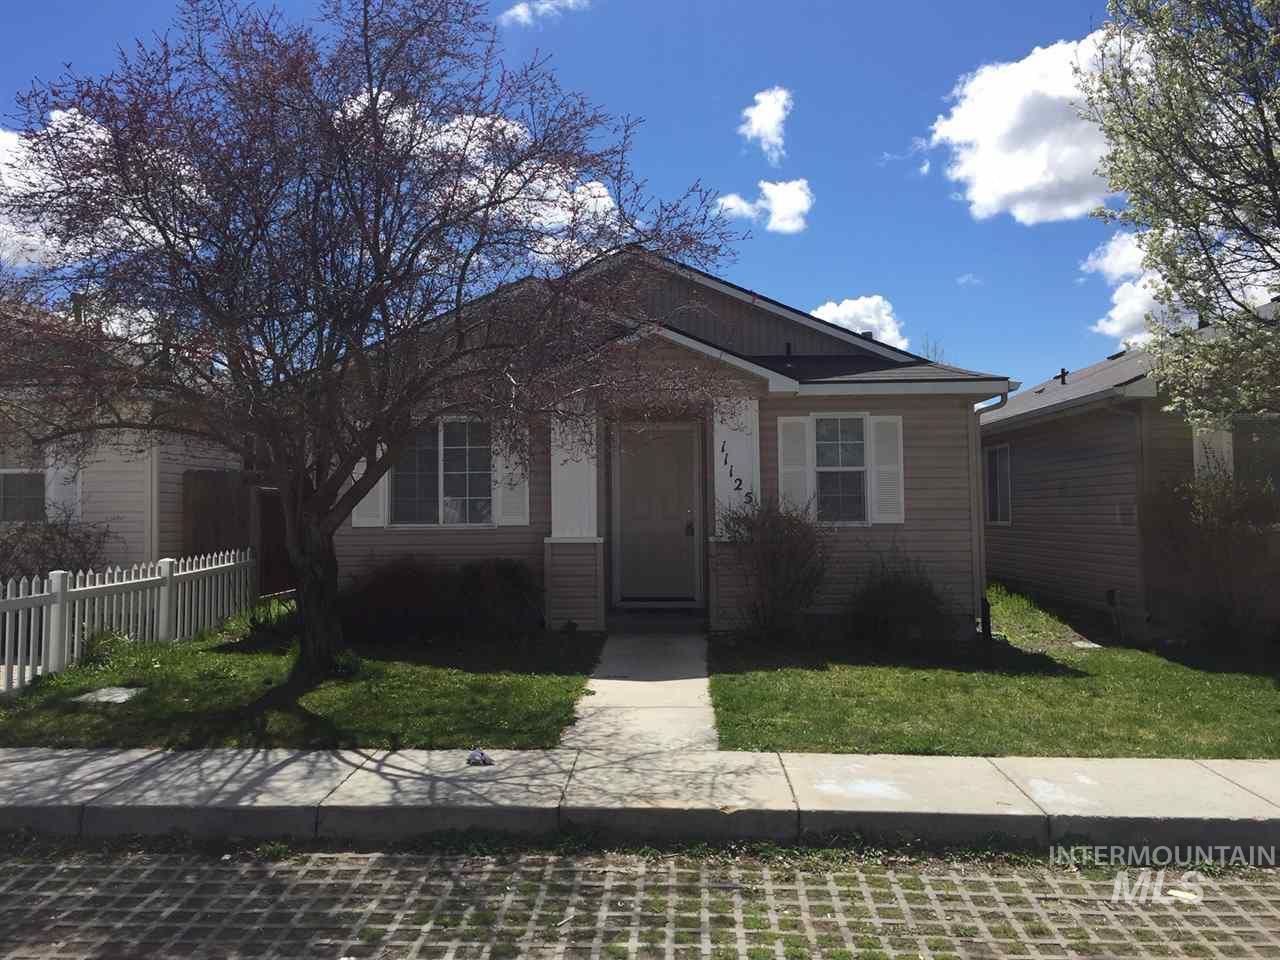 11125 W Race St., Boise, Idaho 83713, 3 Bedrooms, 2 Bathrooms, Residential Income For Sale, Price $214,900, 98725385